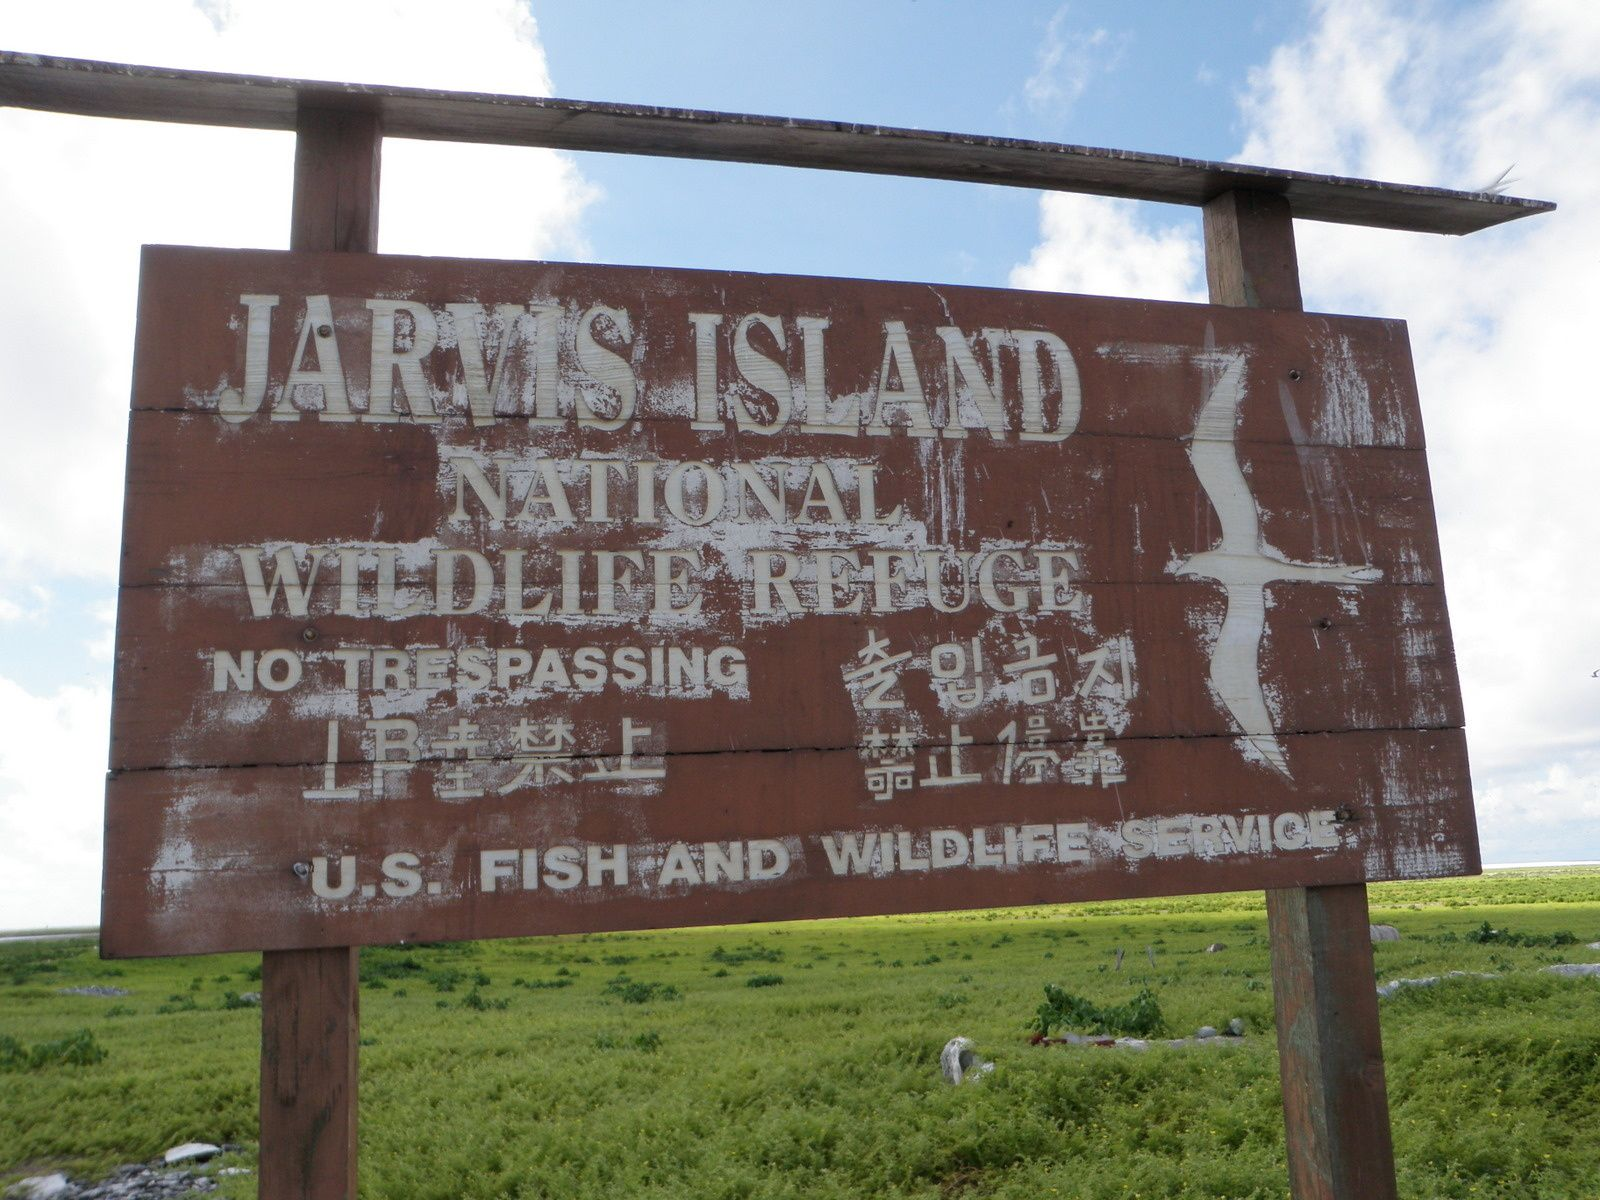 Jarvis sign prohibiting the enter - Jarvis island Wildlife refuge.